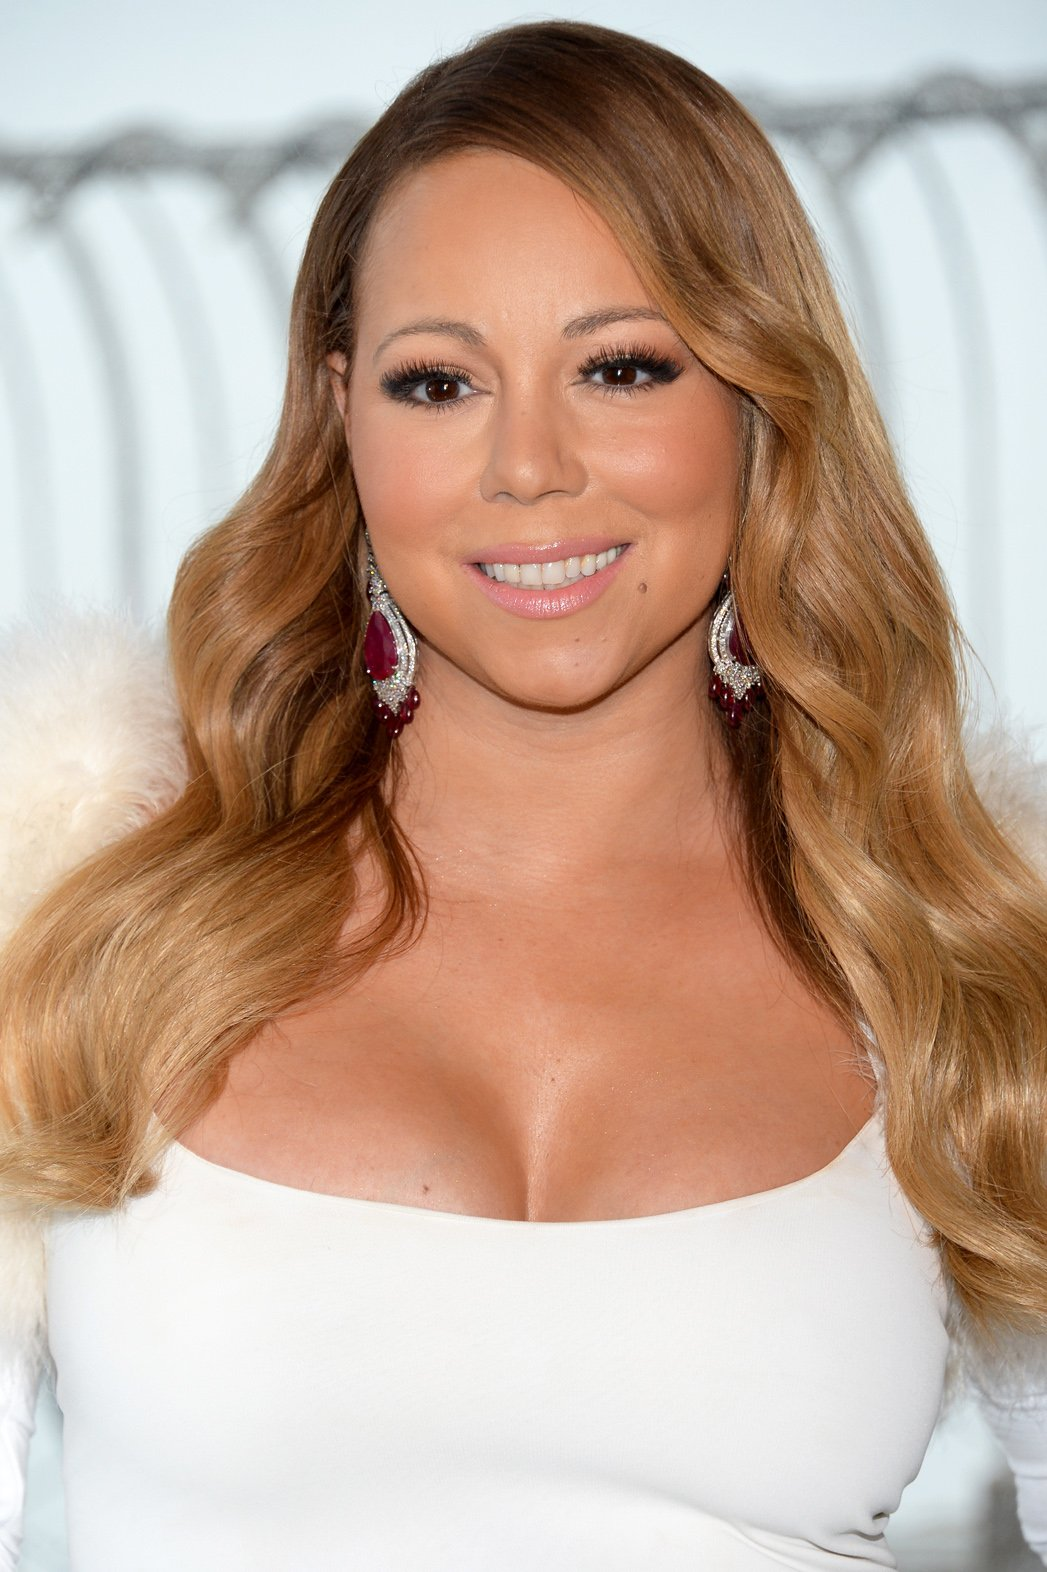 mount carey single hispanic girls 25112009  music video by mariah carey performing obsessed youtube view counts pre-vevo: 18,431,686 (c) 2009 the island def jam music group and mariah carey.